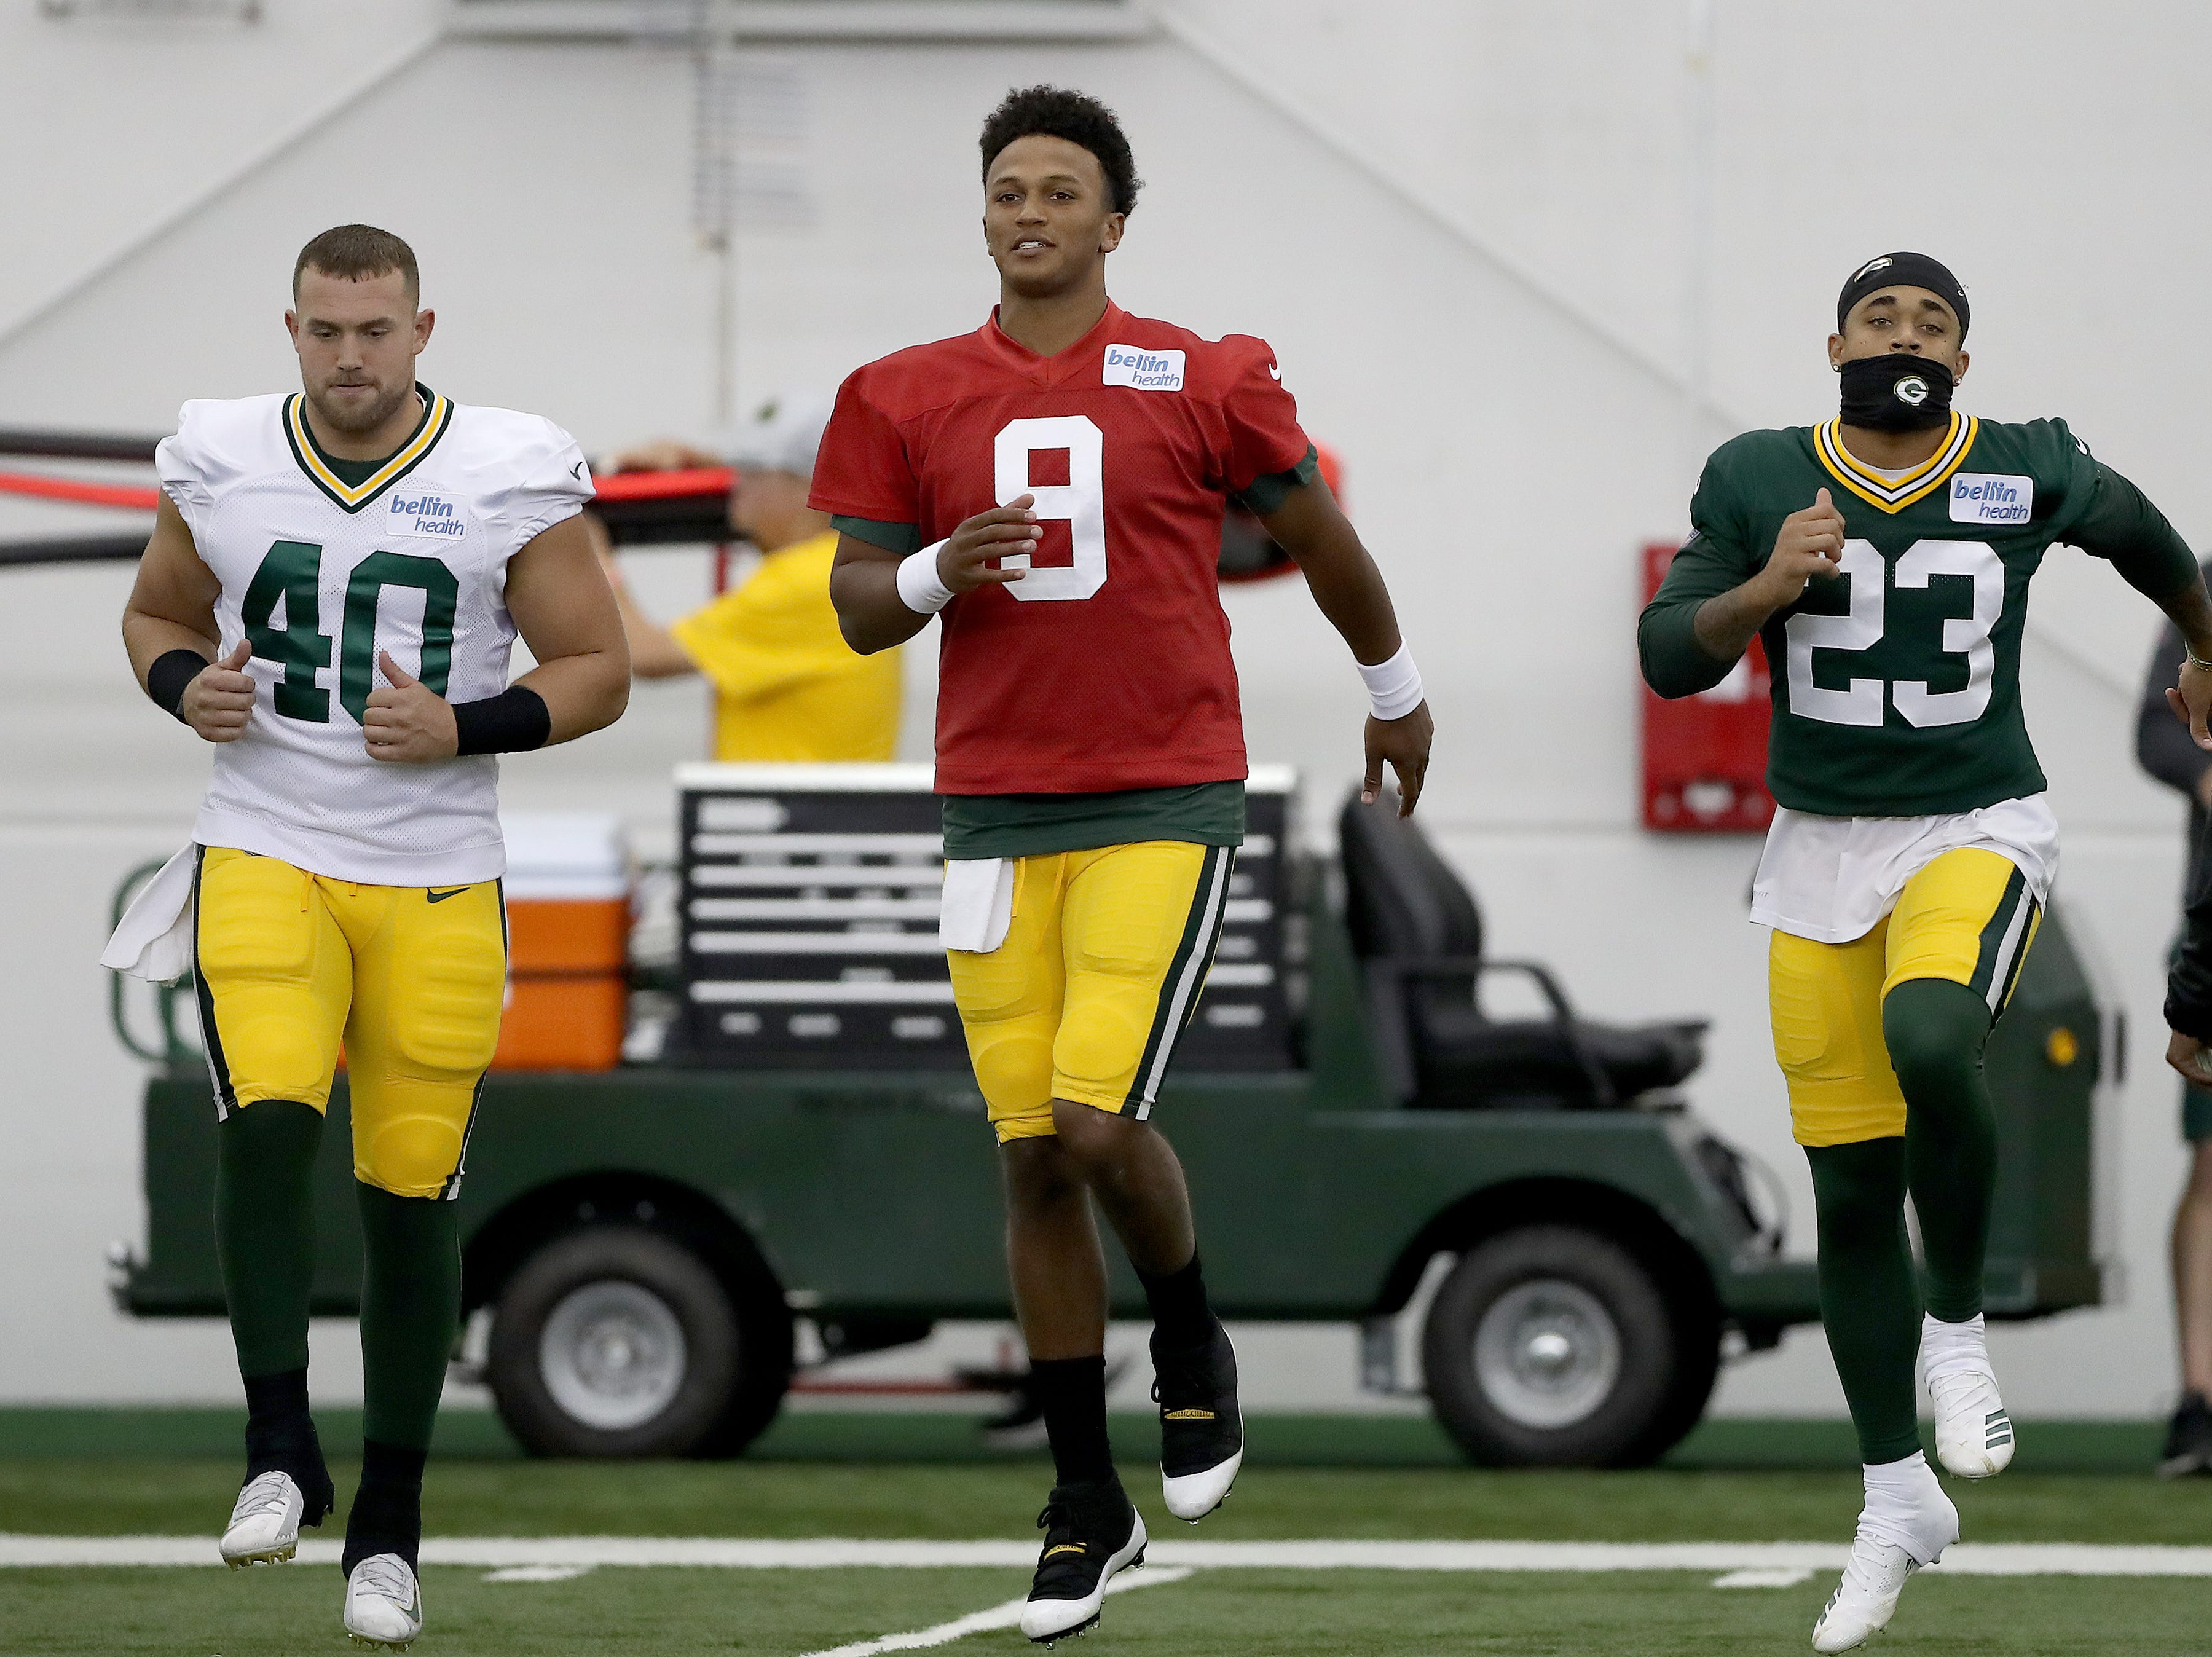 Green Bay Packers quarterback DeShone Kizer (9) along with cornerback Jaire Alexander (32) warm up during Packers practice in the Don Hutson Center Monday, September 3, 2018 in Ashwaubenon, Wis